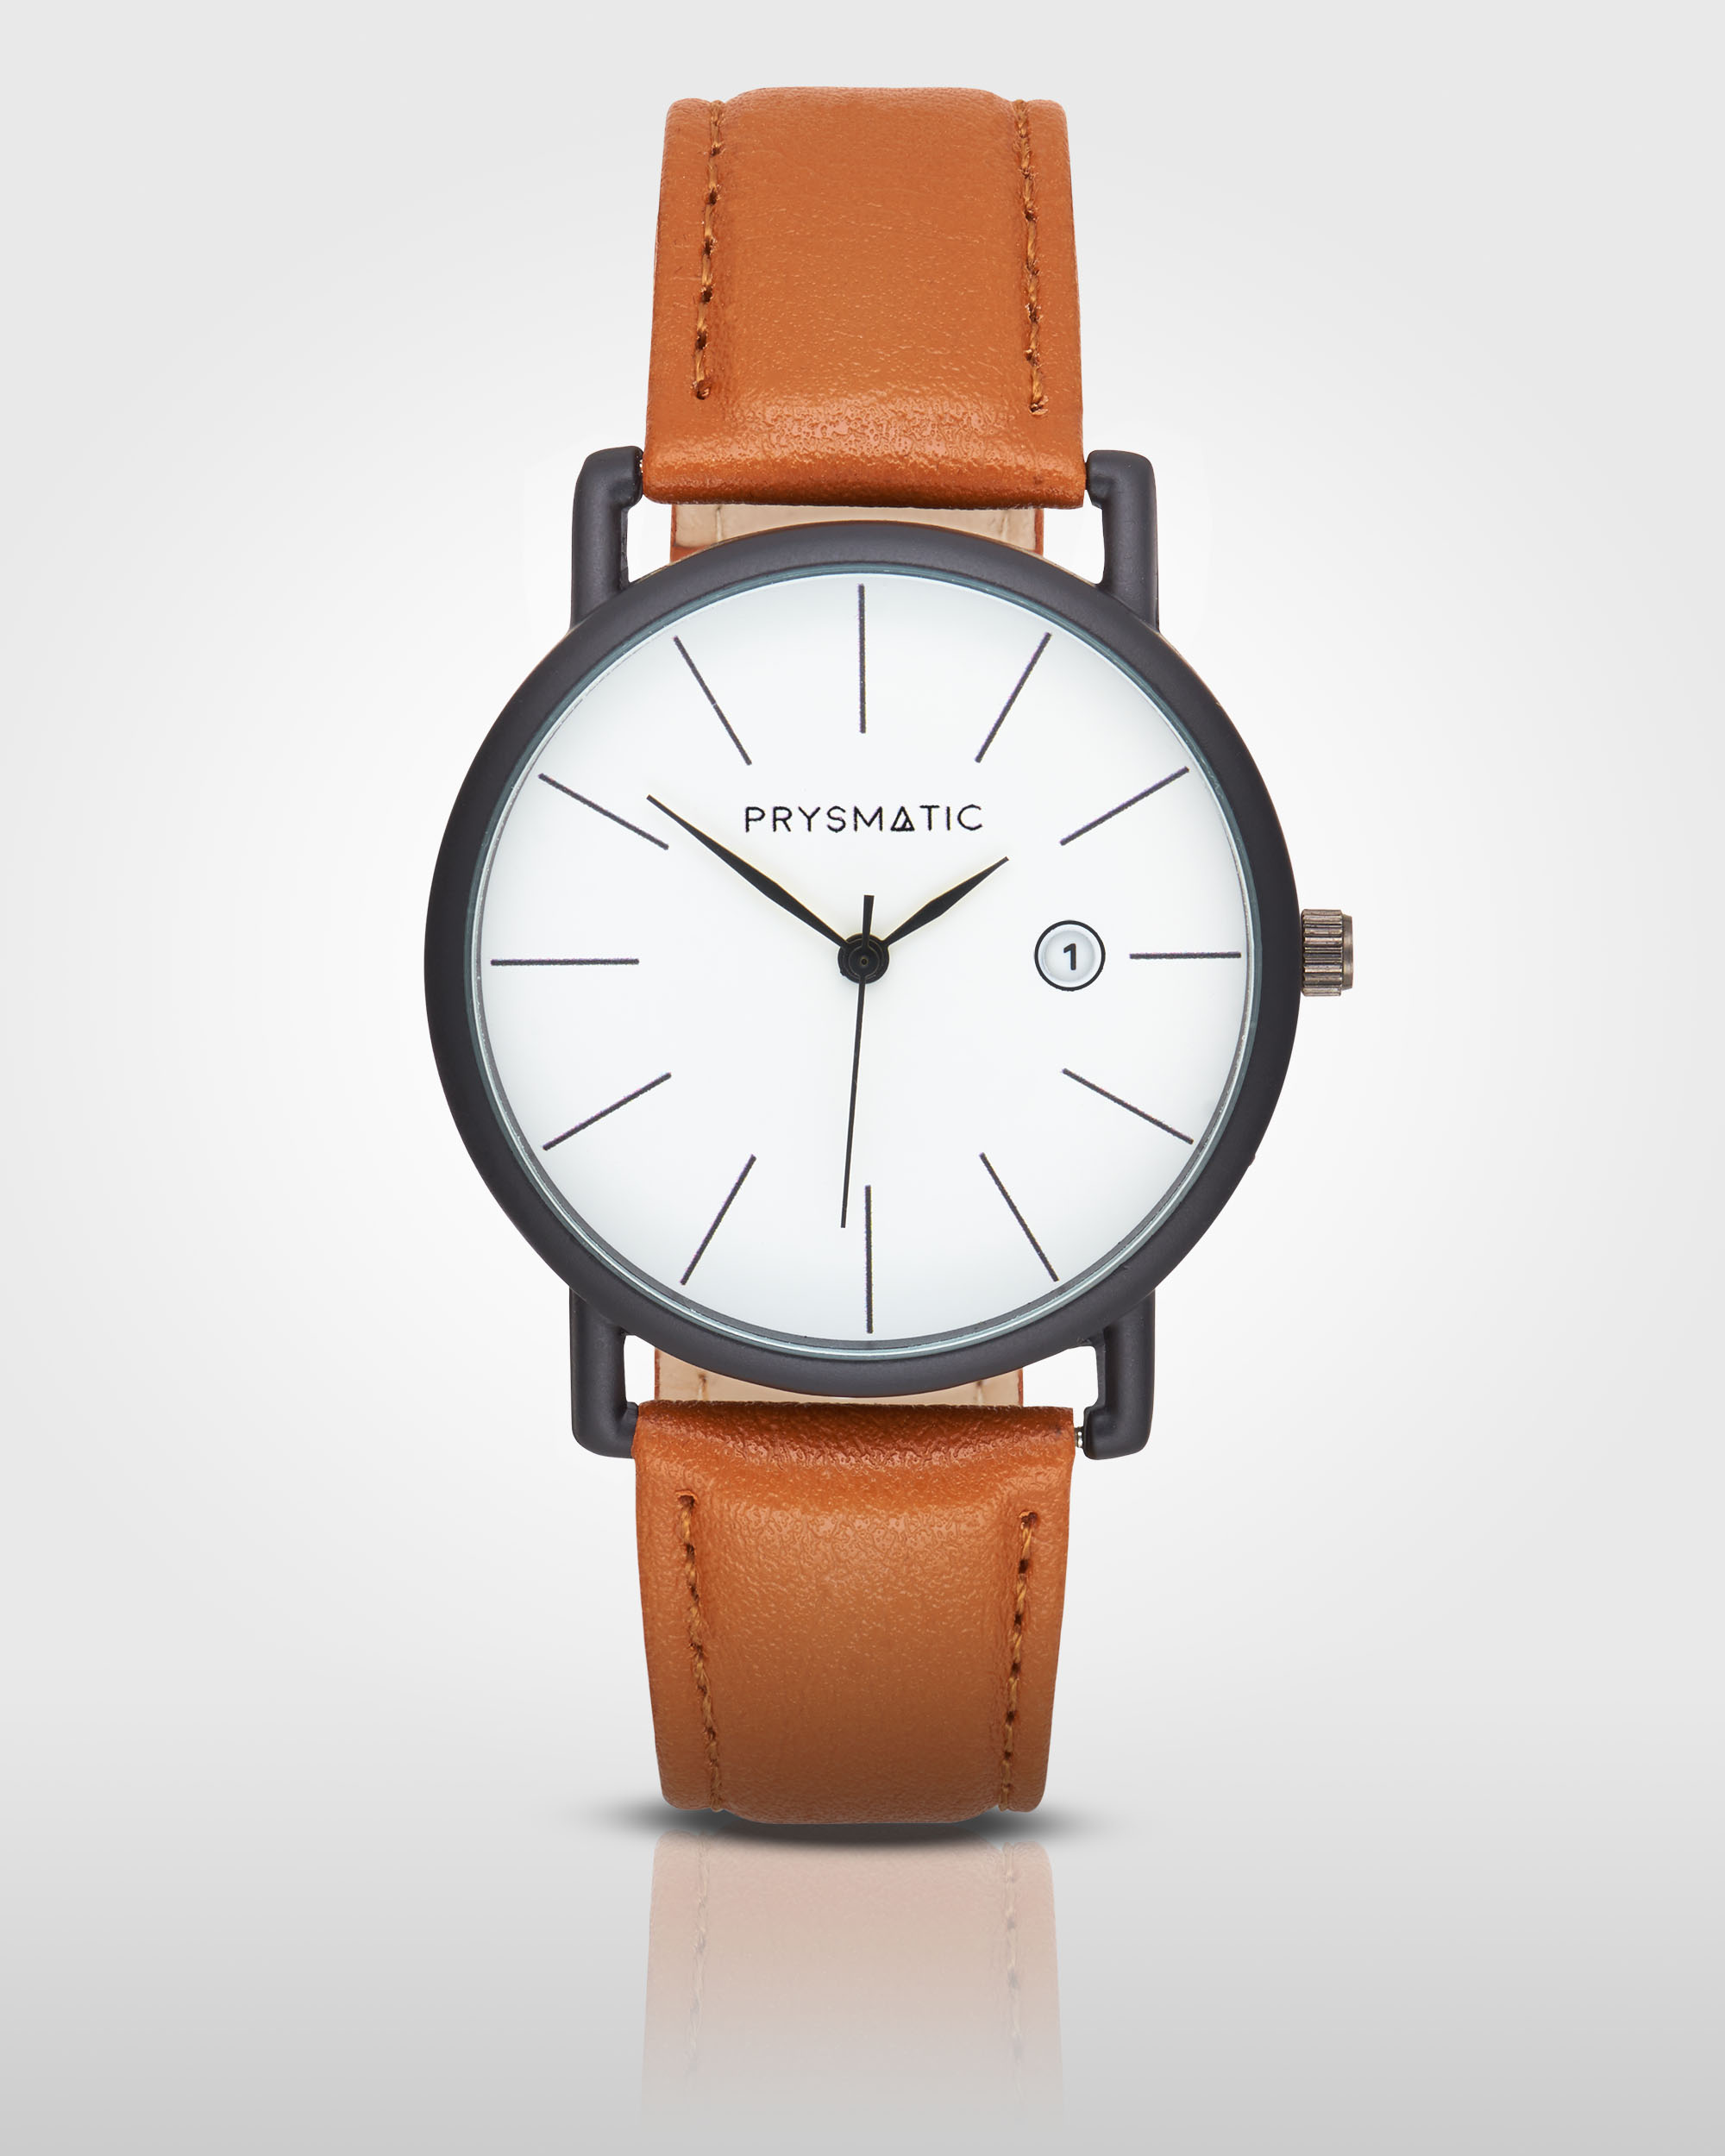 Ian Knaggs Commercial Watch Photographer - Prysmatic Watch on grey